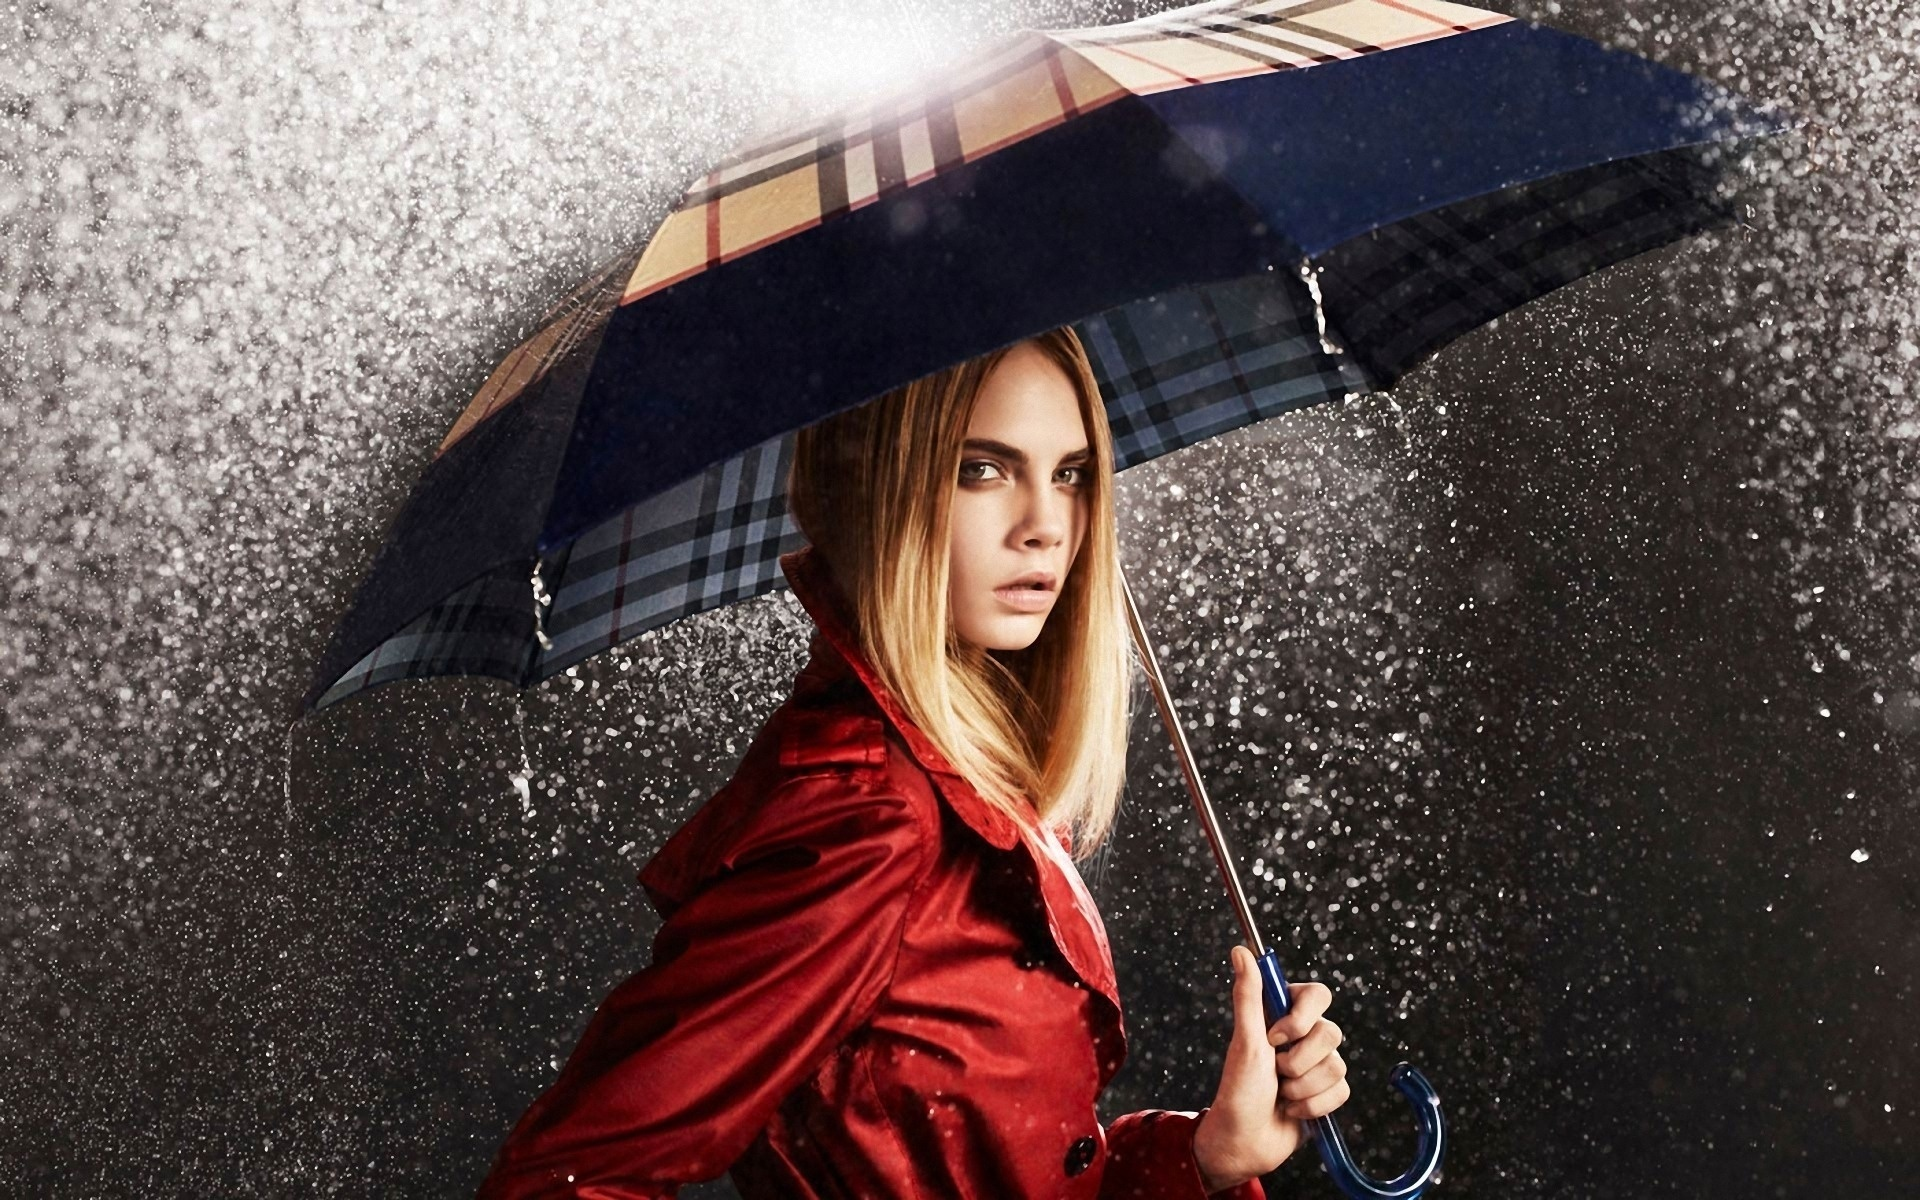 Cara Delevingne Full HD Wallpaper And Background Image